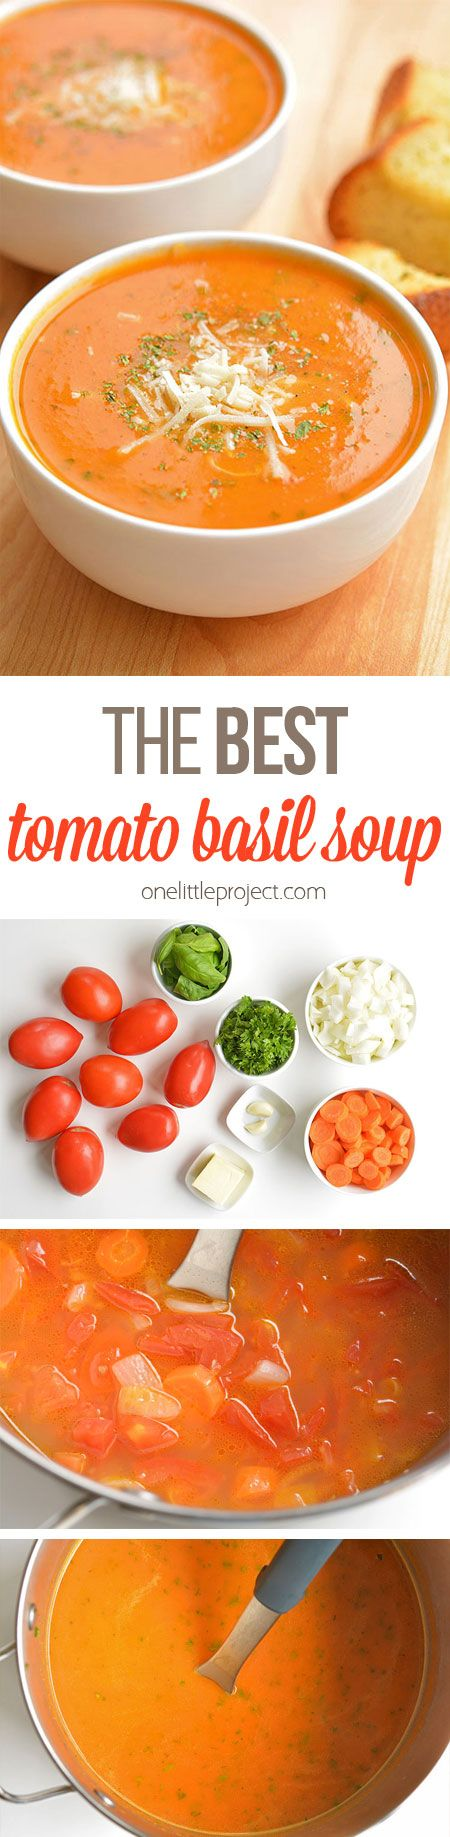 The BEST Tomato Basil Soup Recipe | One Little Project - The BEST Homemade Soups Recipes - Easy, Quick and Yummy Lunch and Dinner Family Favorites Meals Ideas #soup #souprecipes #homemadesoup #soups #easysouprecipes #easyrecipes #lunchrecipes #fallrecipes #winterrecipes